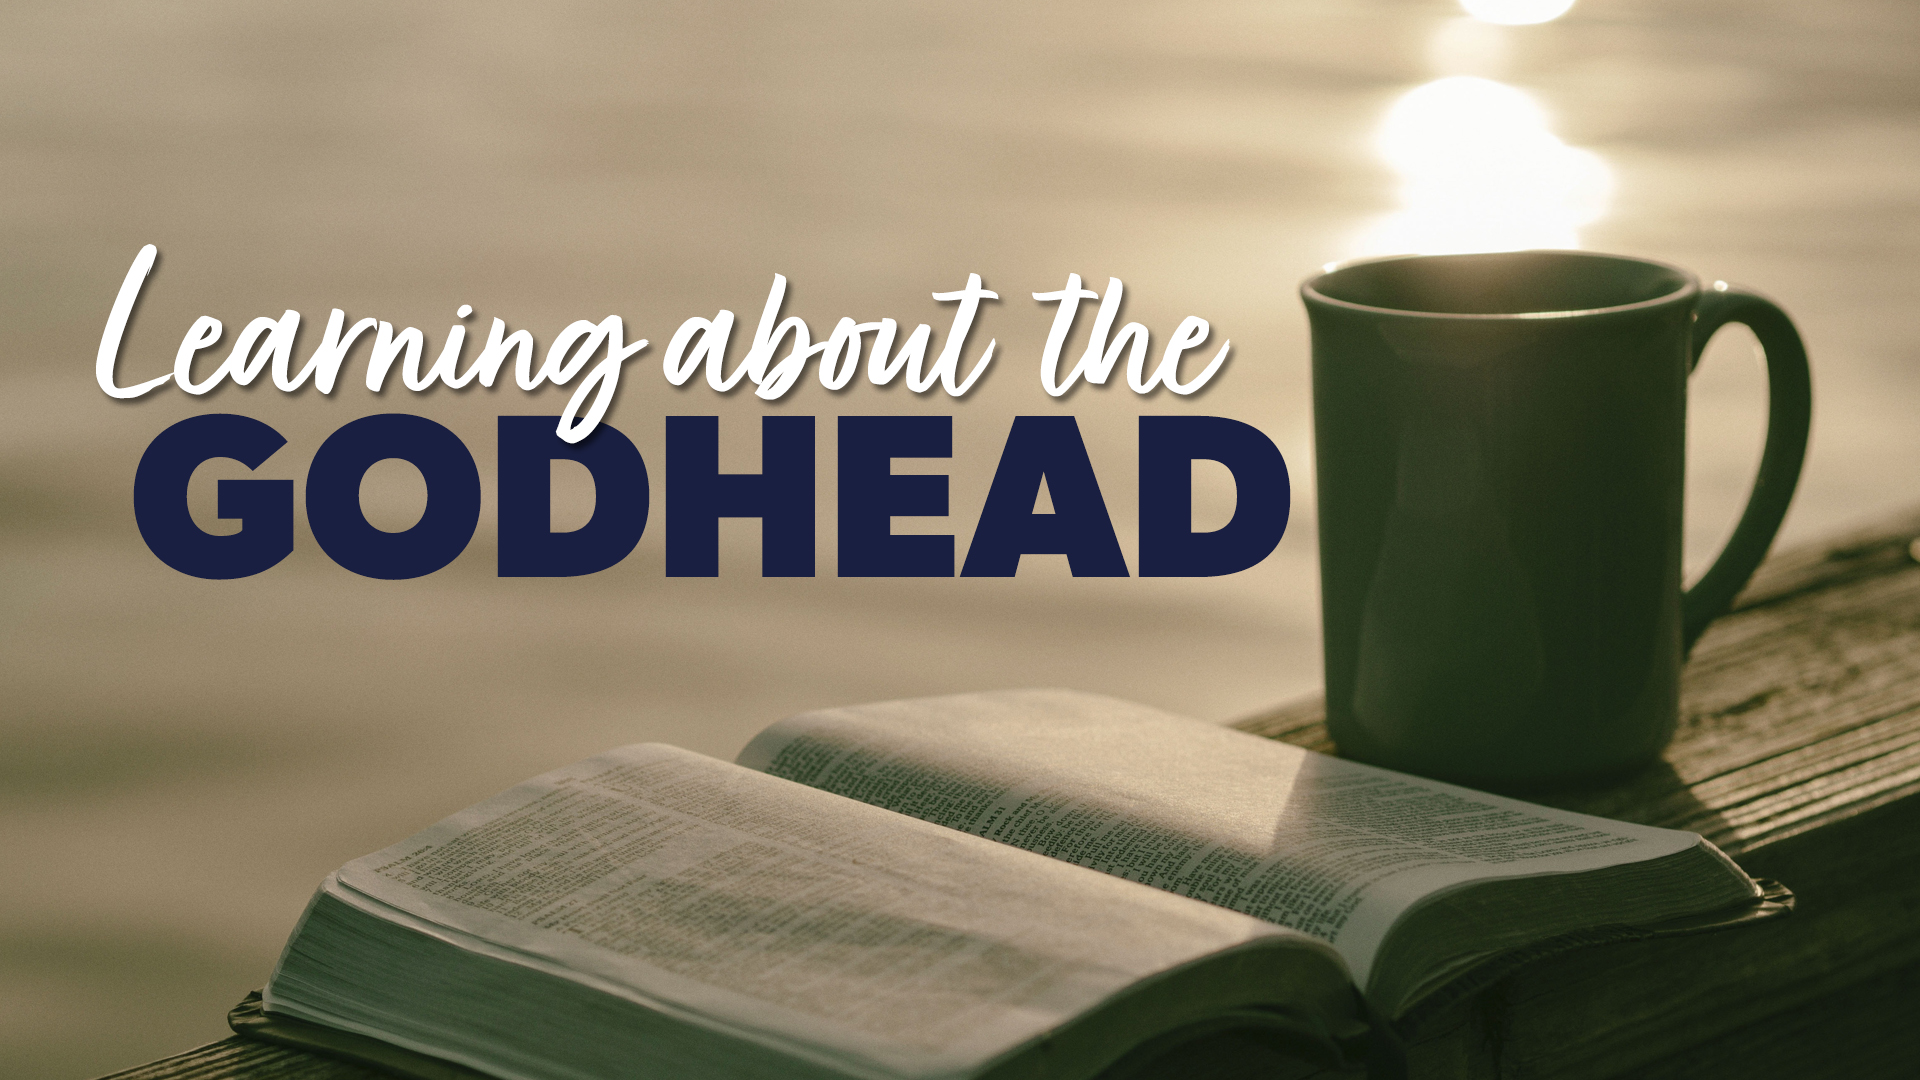 Learning about the Godhead